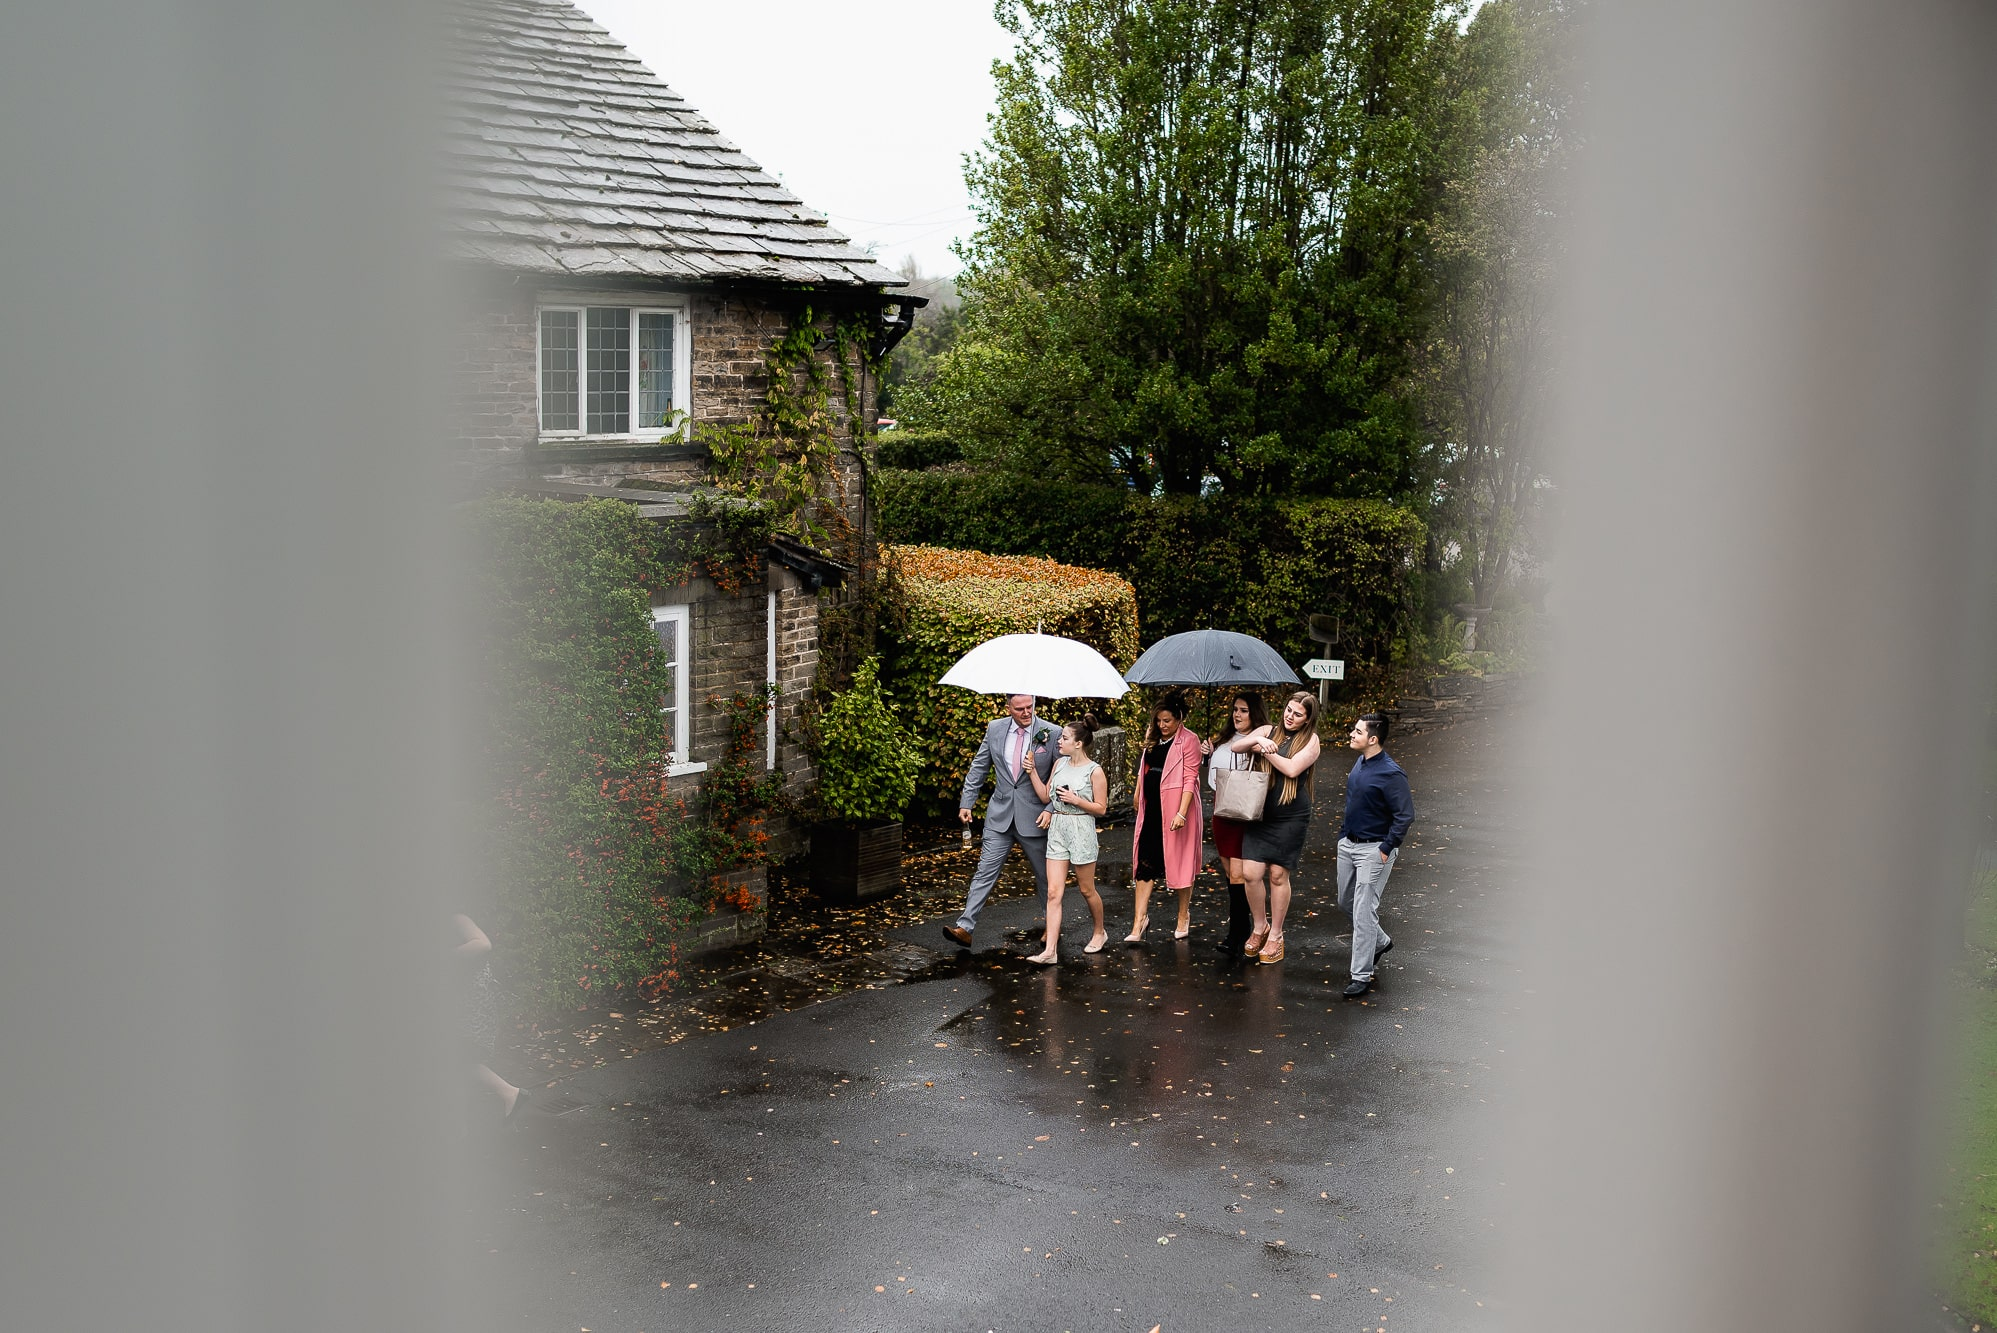 Guests arriving in the rain at Hilltop Country House